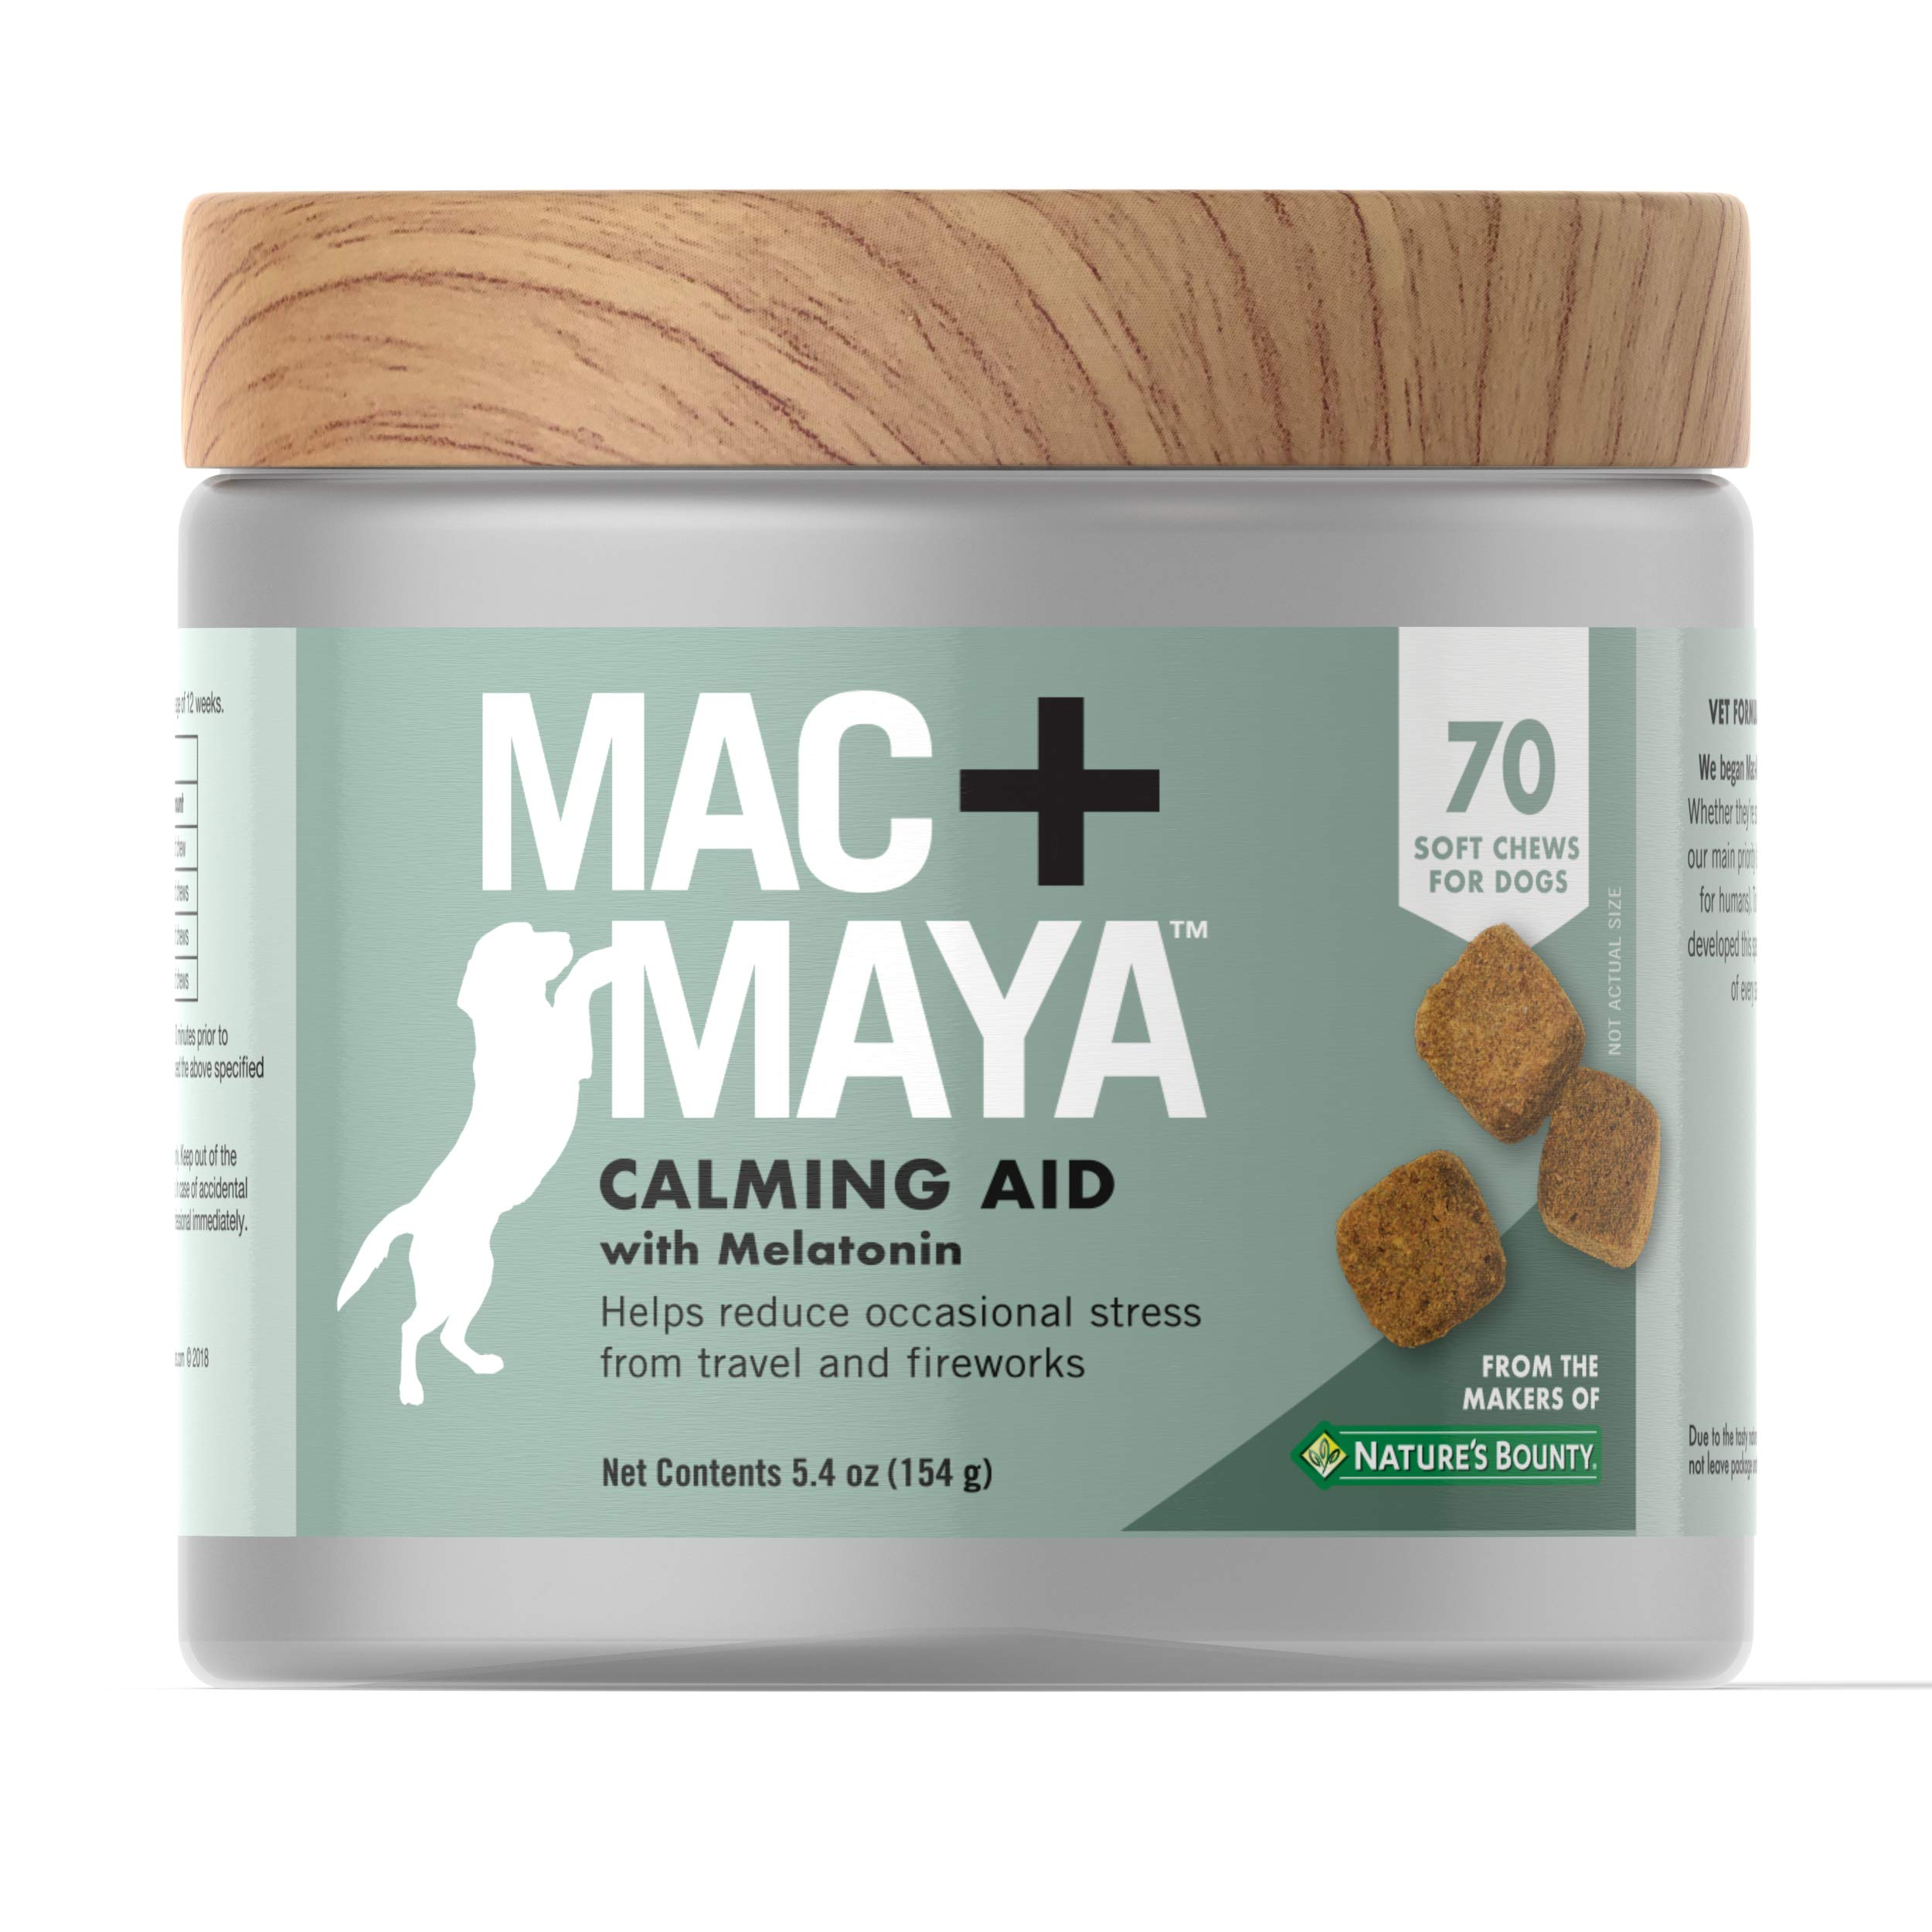 Mac + Maya™ Calming Aid for Dogs with Melatonin, Helps to Reduce Stress & Tension for Dogs, with.